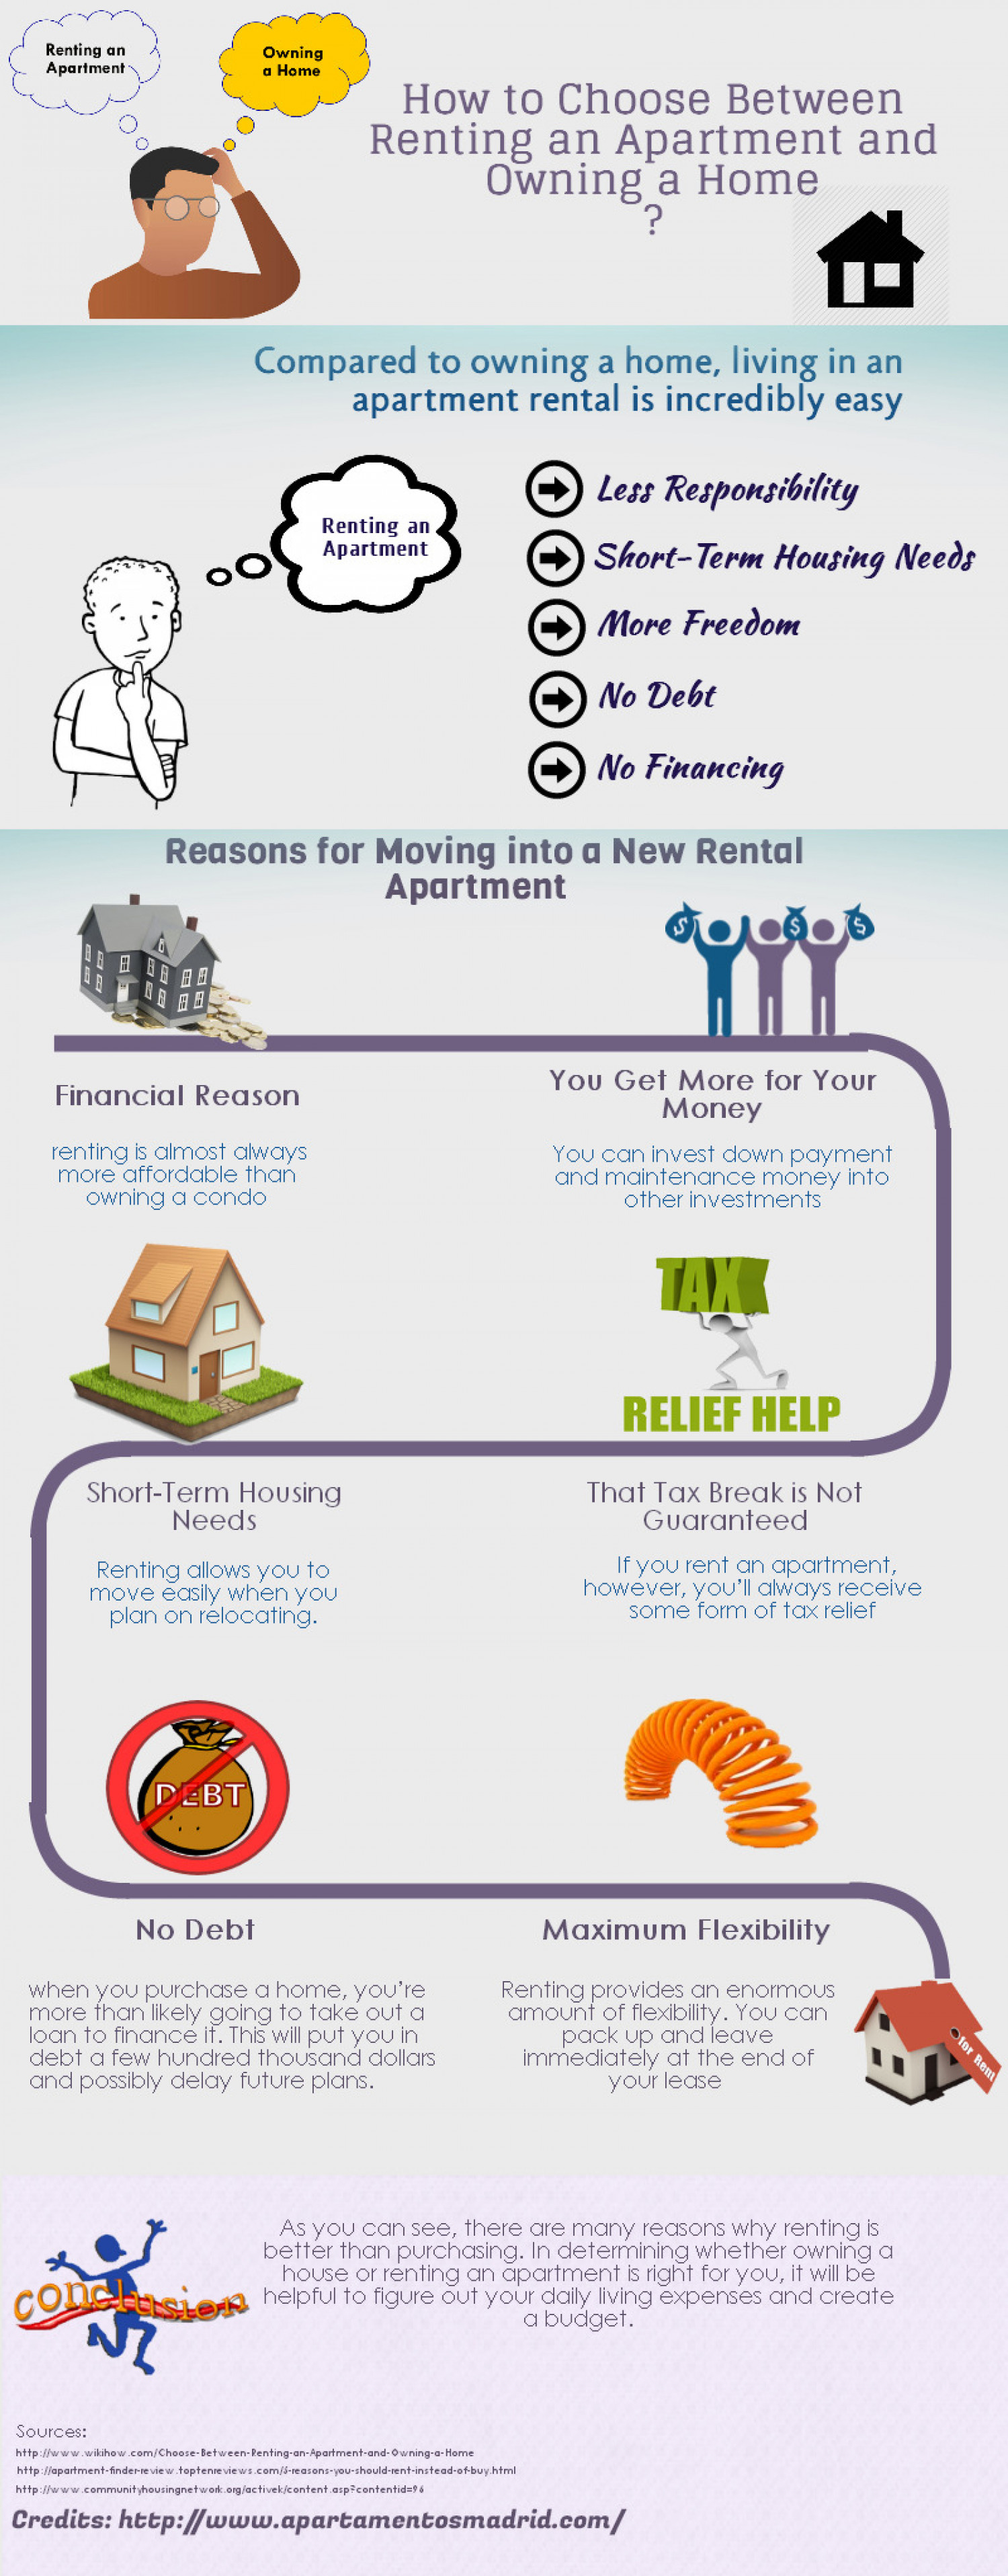 Renting an Apartment Vs Owning a Home Infographic